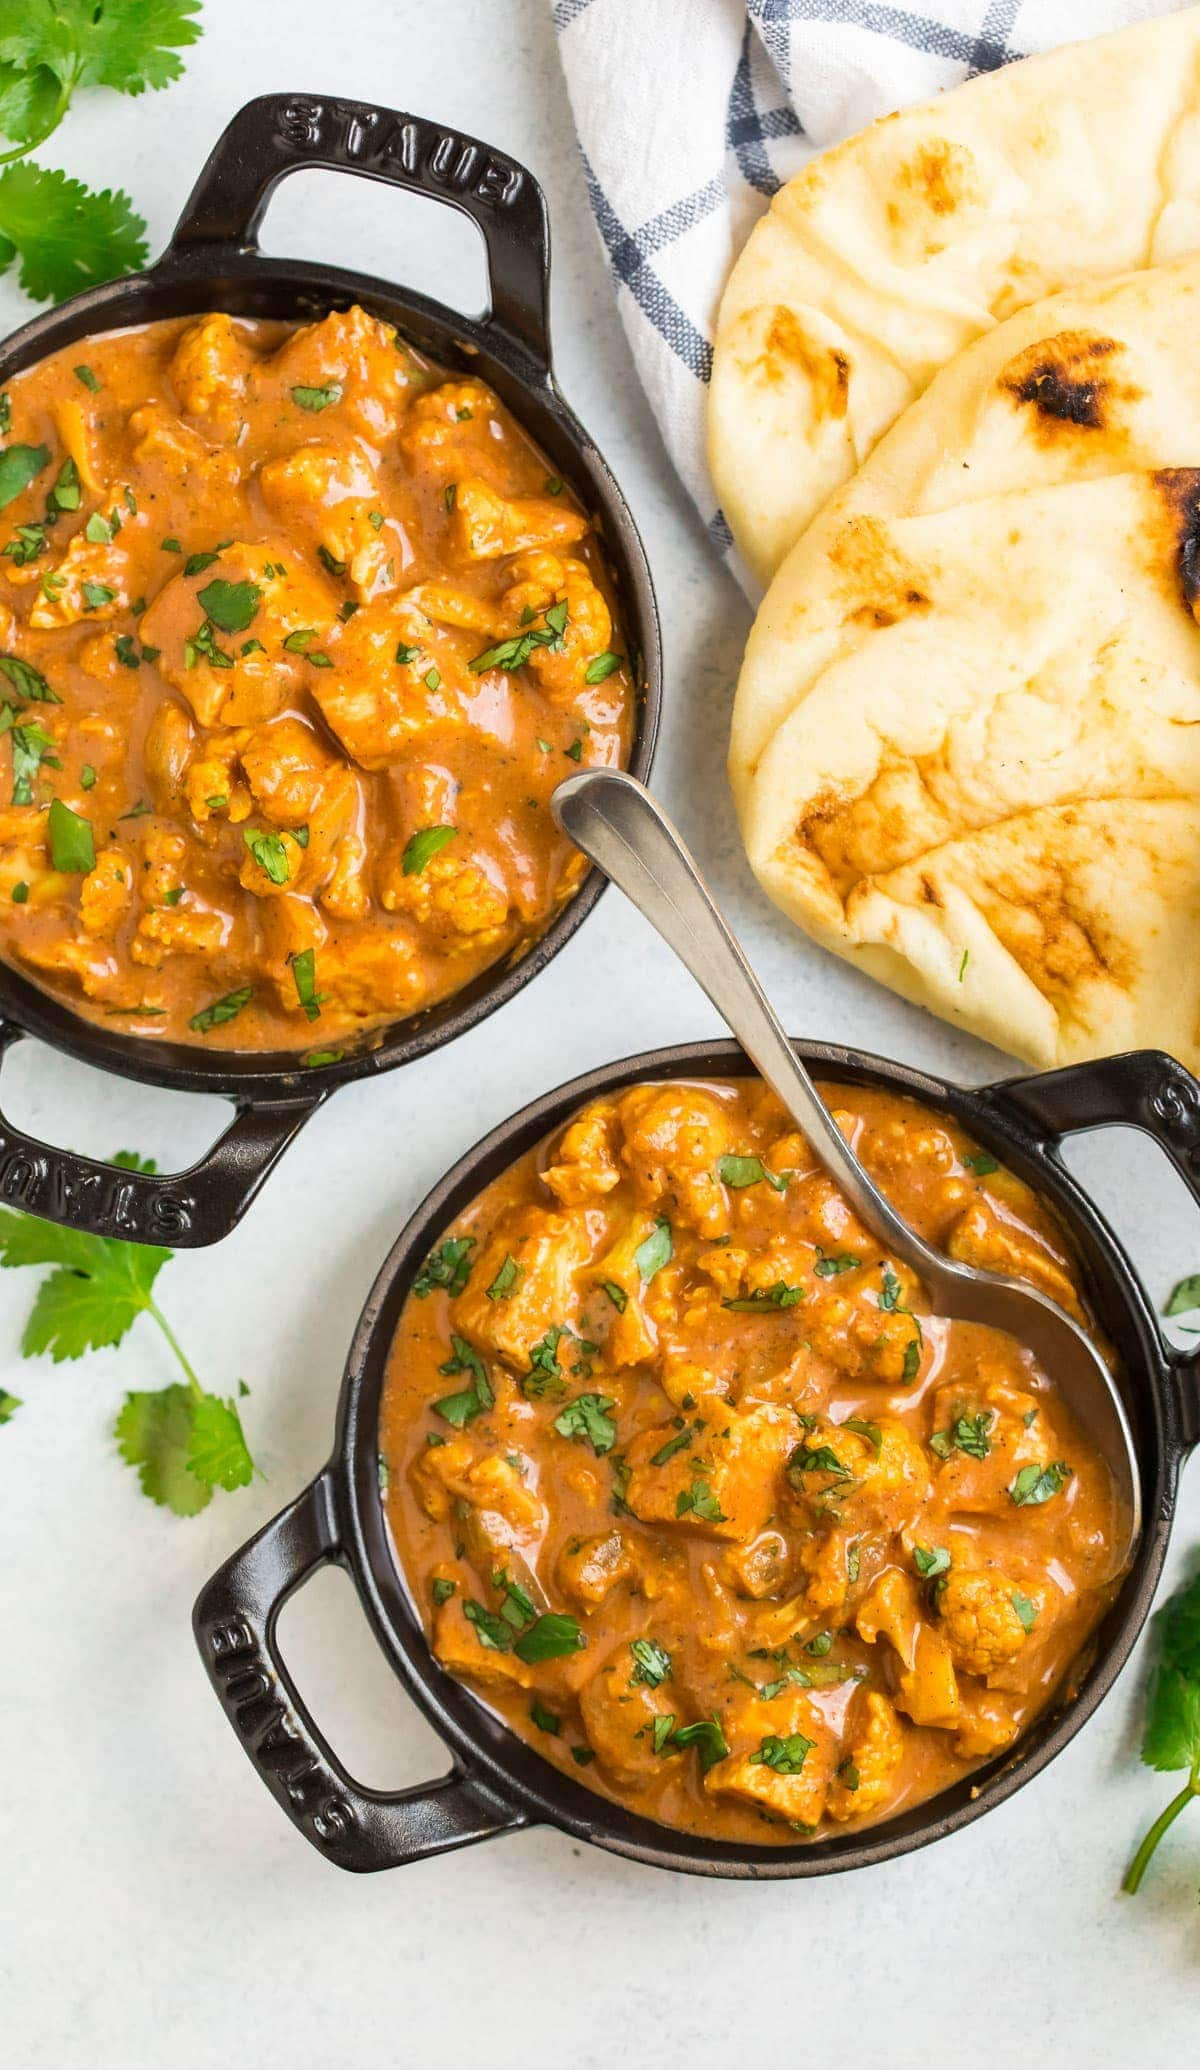 Two bowls of butter chicken with naan bread on the side